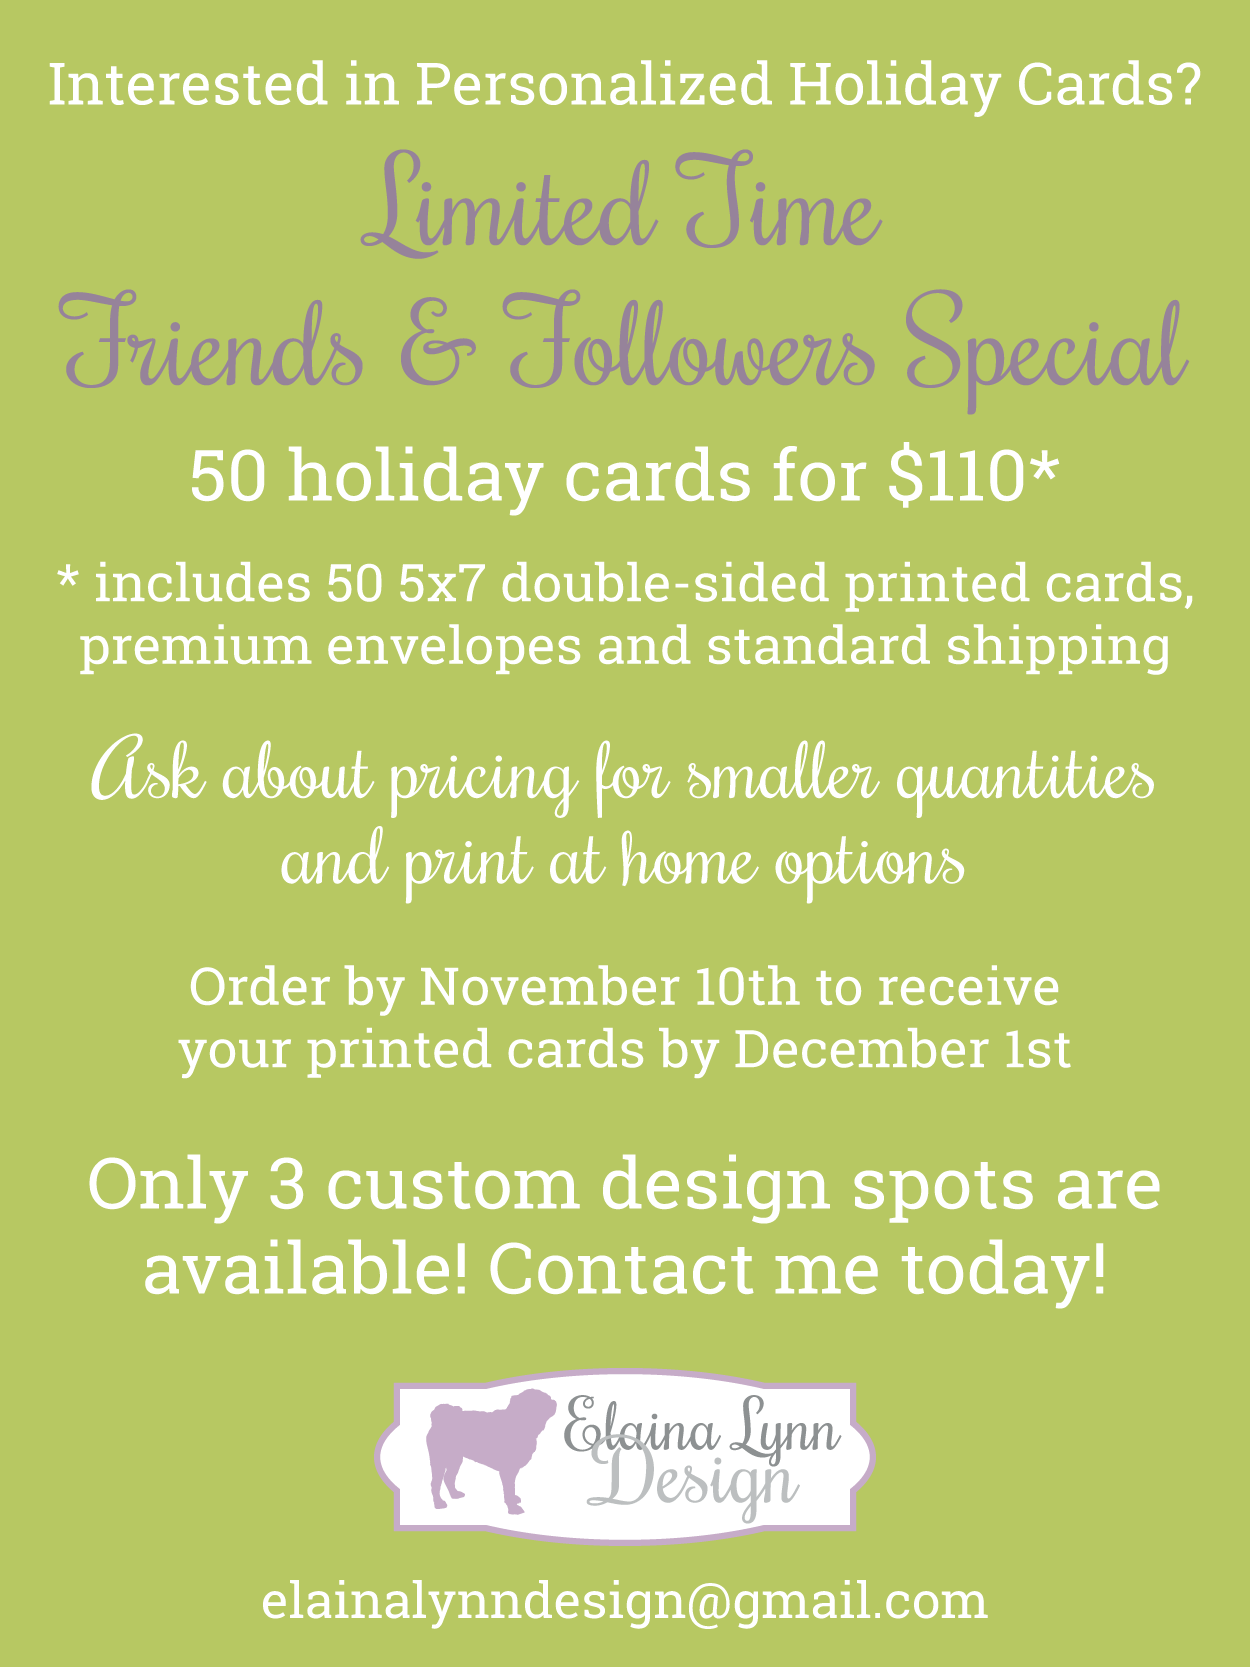 Personalized holiday cards by Elaina Lynn Design